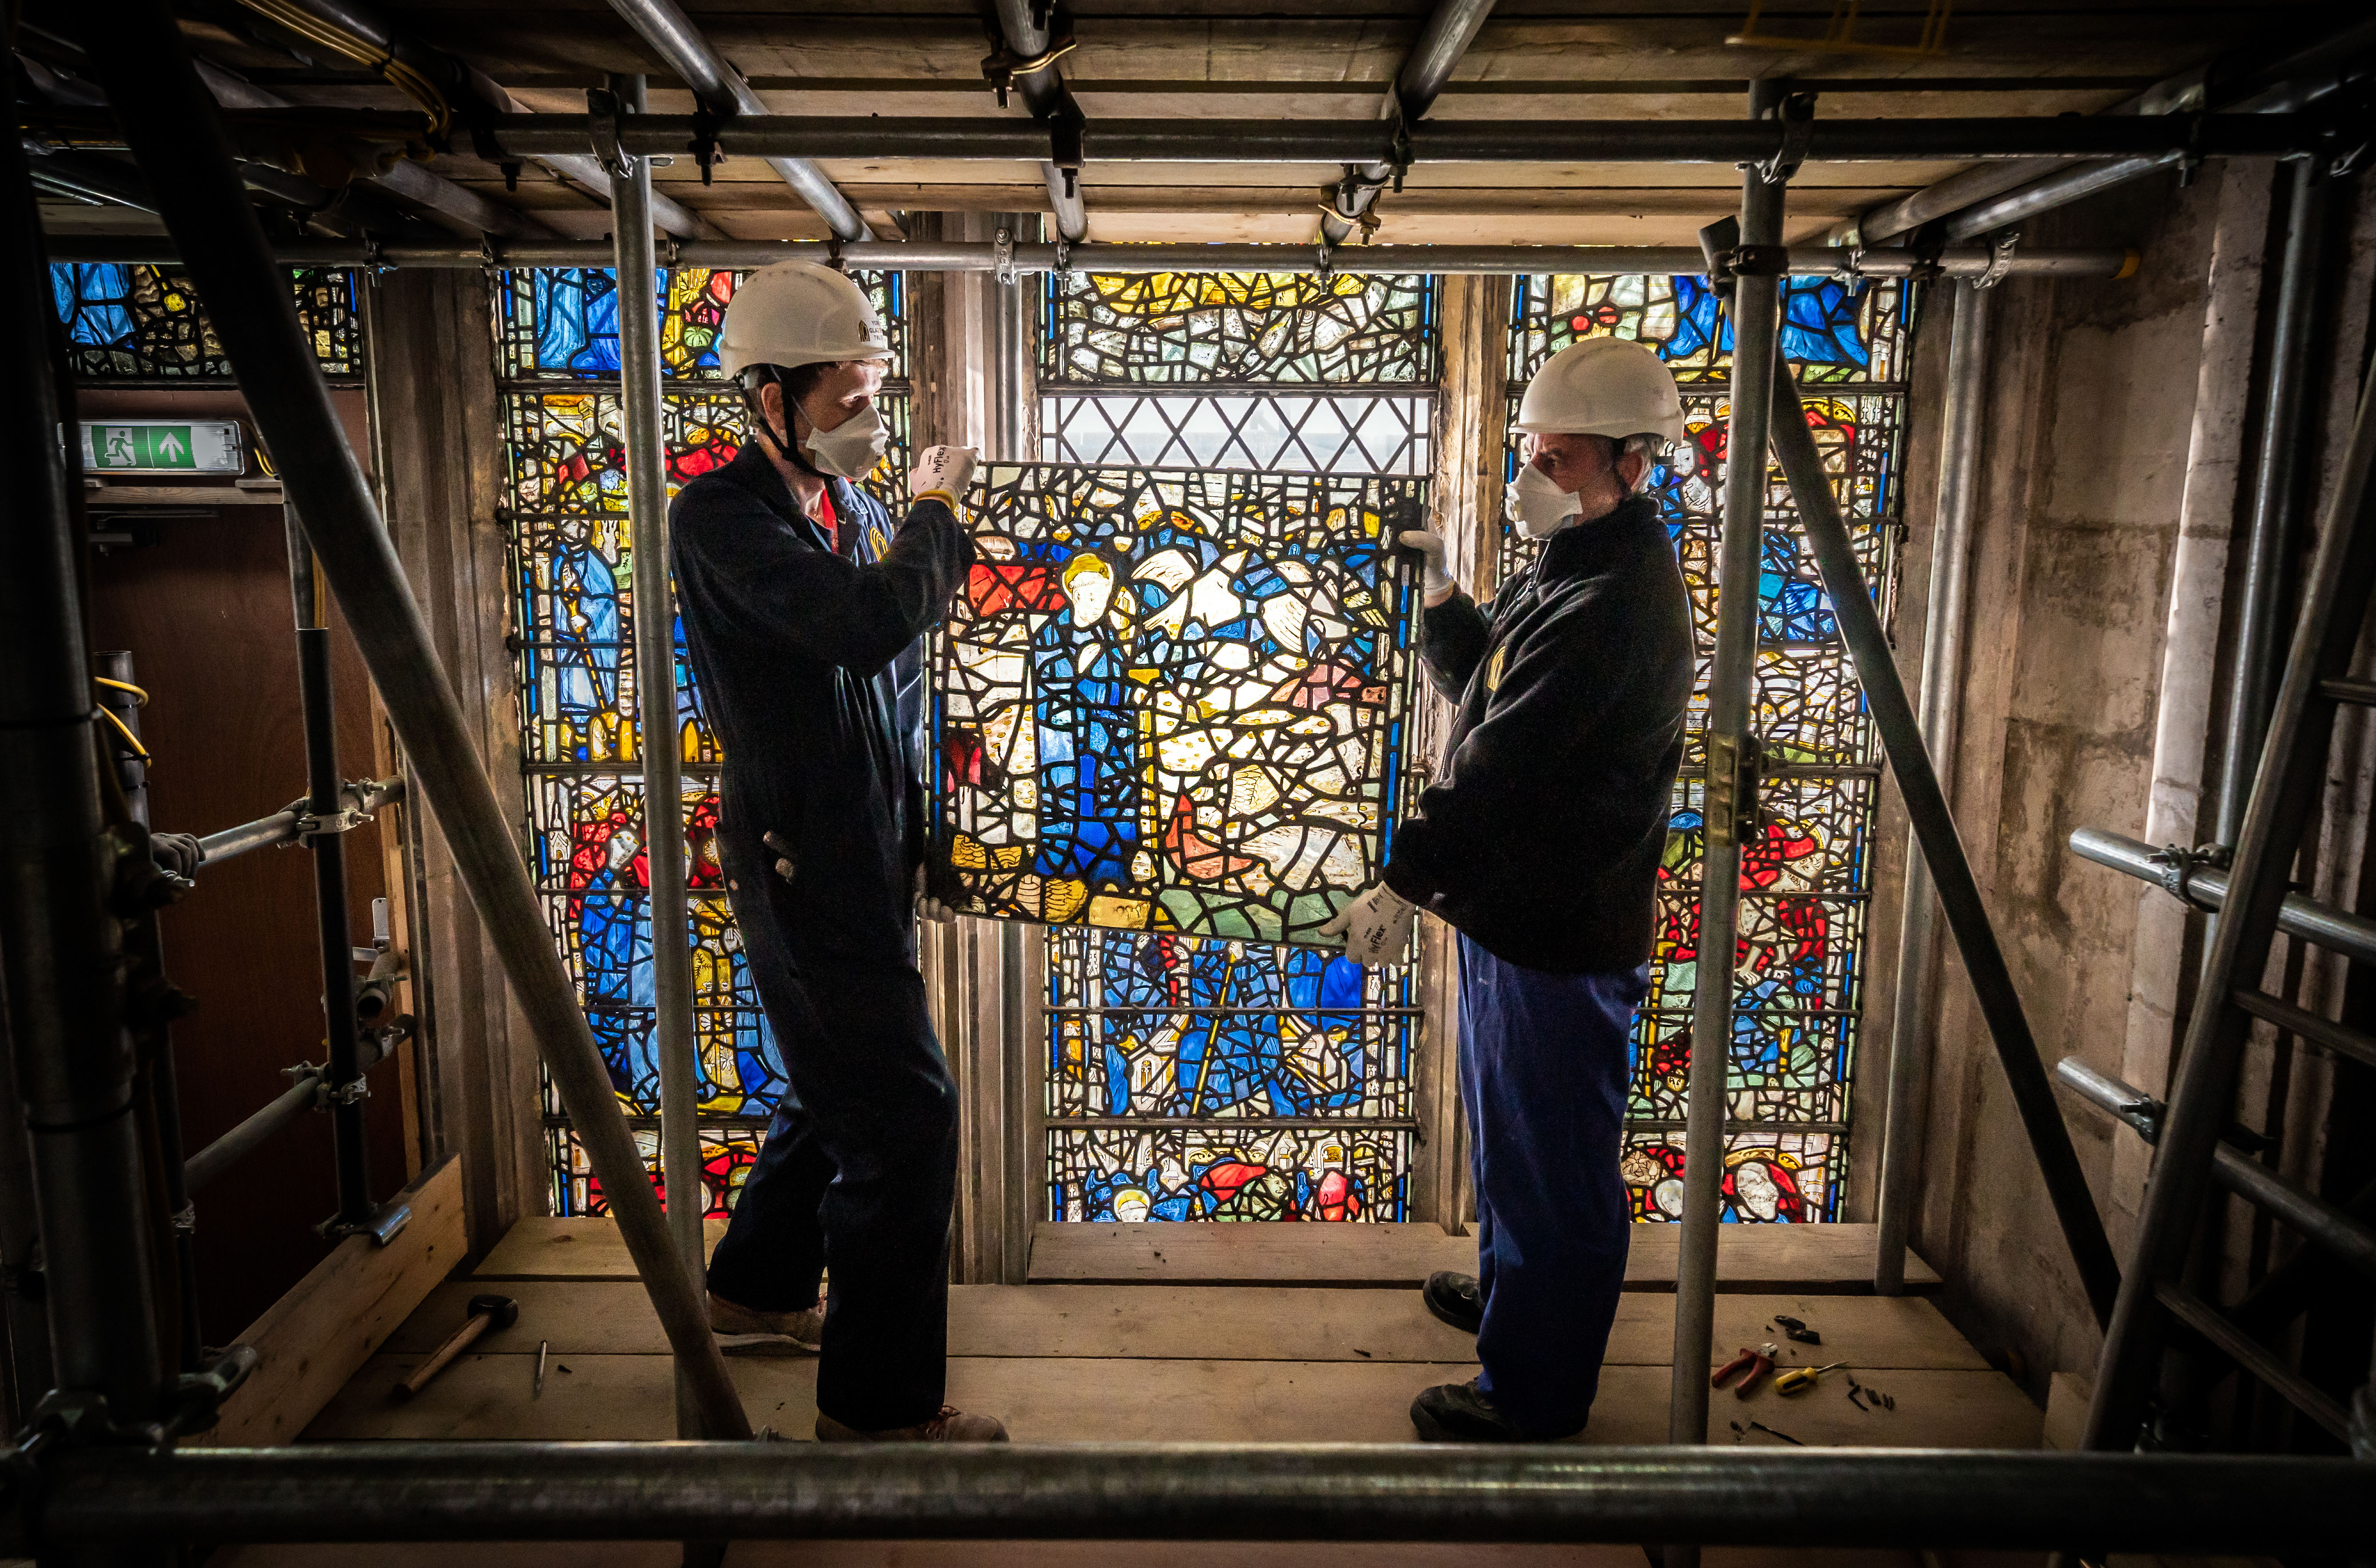 <p>Conservator Matthew Nickels (left) and Master Glazier Tony Cattle (right) from York Glaziers Trust removed a stained glass window panel at the start of a new five year, �5m project to conserve York Minster's South East Transept and its medieval St Cuthbert Window. Picture date: Tuesday May 25, 2021. Work is being undertaken by York Glaziers Trust to remove stained glass panels from the window, which is nearly 600-years-old and one of the largest surviving narrative windows in the world. The project involves major conservation and restoration works to both the stained glass and stone elements of the window and the South East Transept in which the window sits.</p>